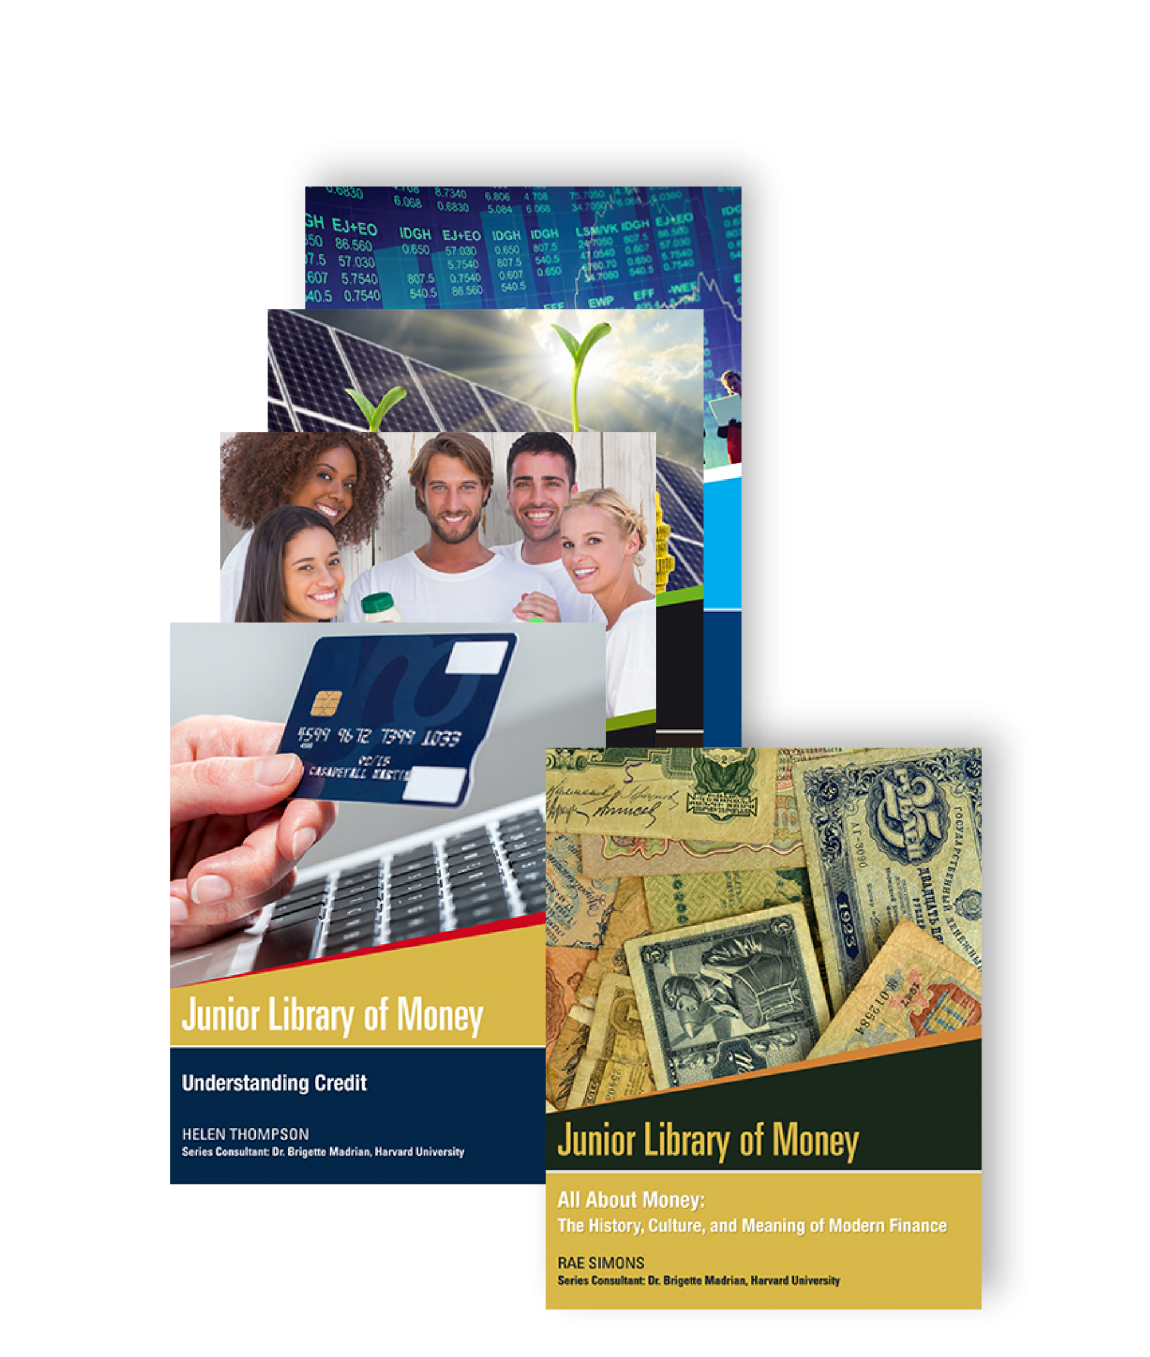 Junior-Library-of-Money-01.png